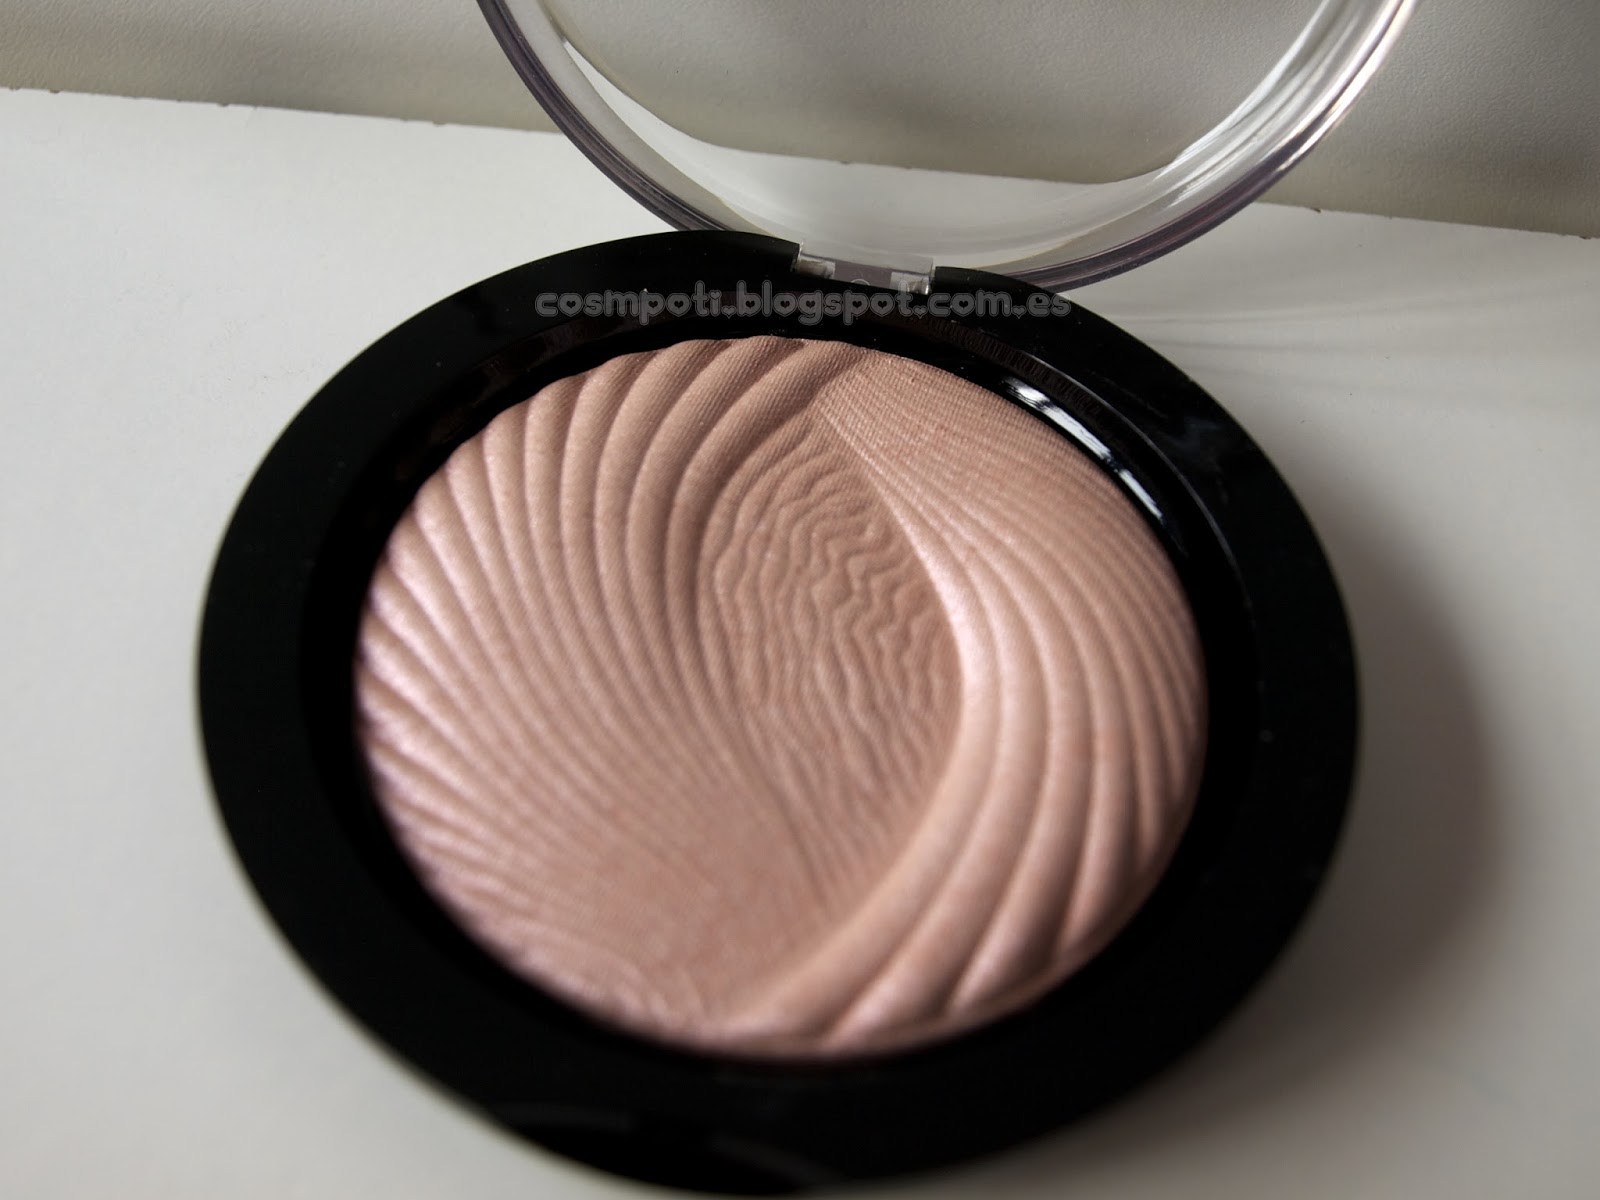 Iluminador En Polvo Iluminadores Makeup Revolution London